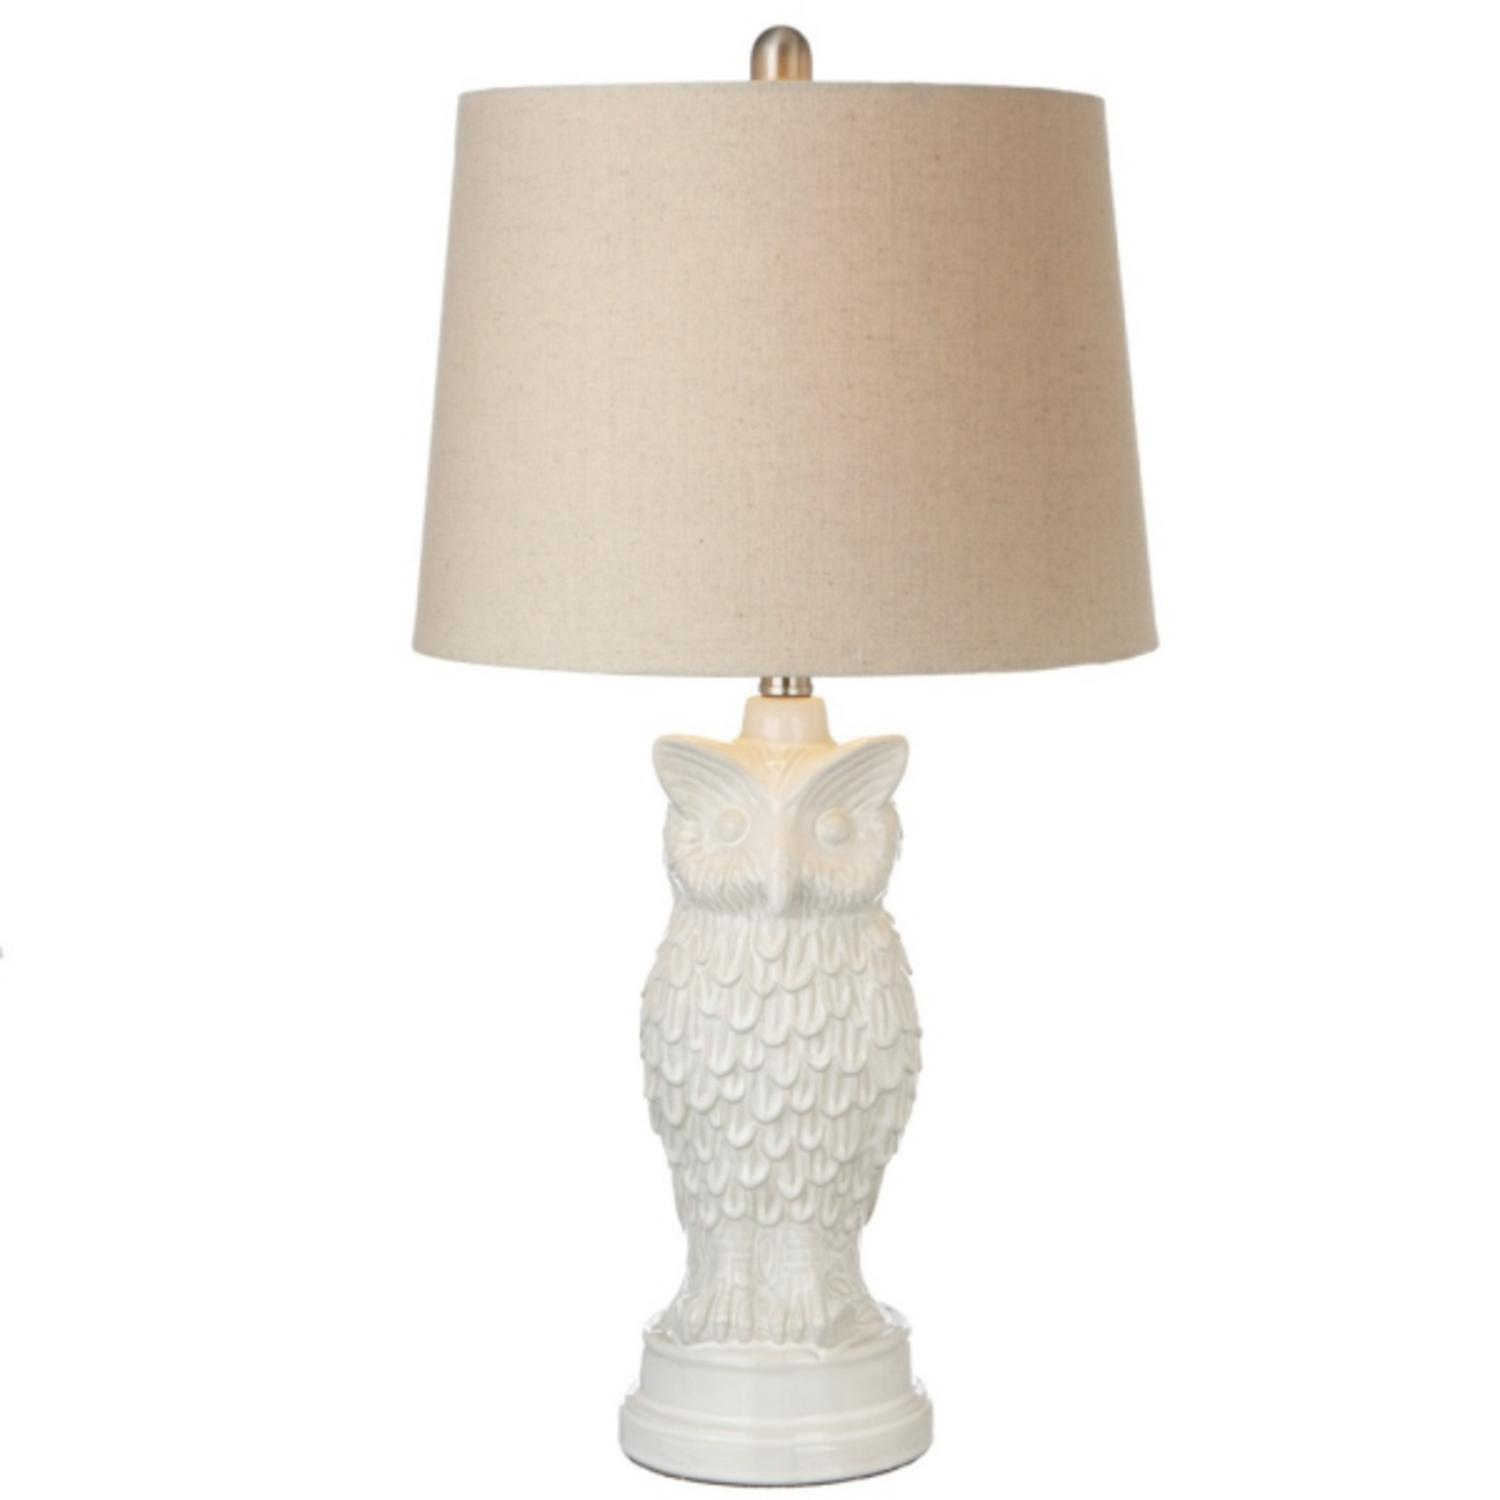 Set Of 2 Rustic Lodge White Ceramic Owl Table Lamps With Off White Fabric  Shades   Walmart.com